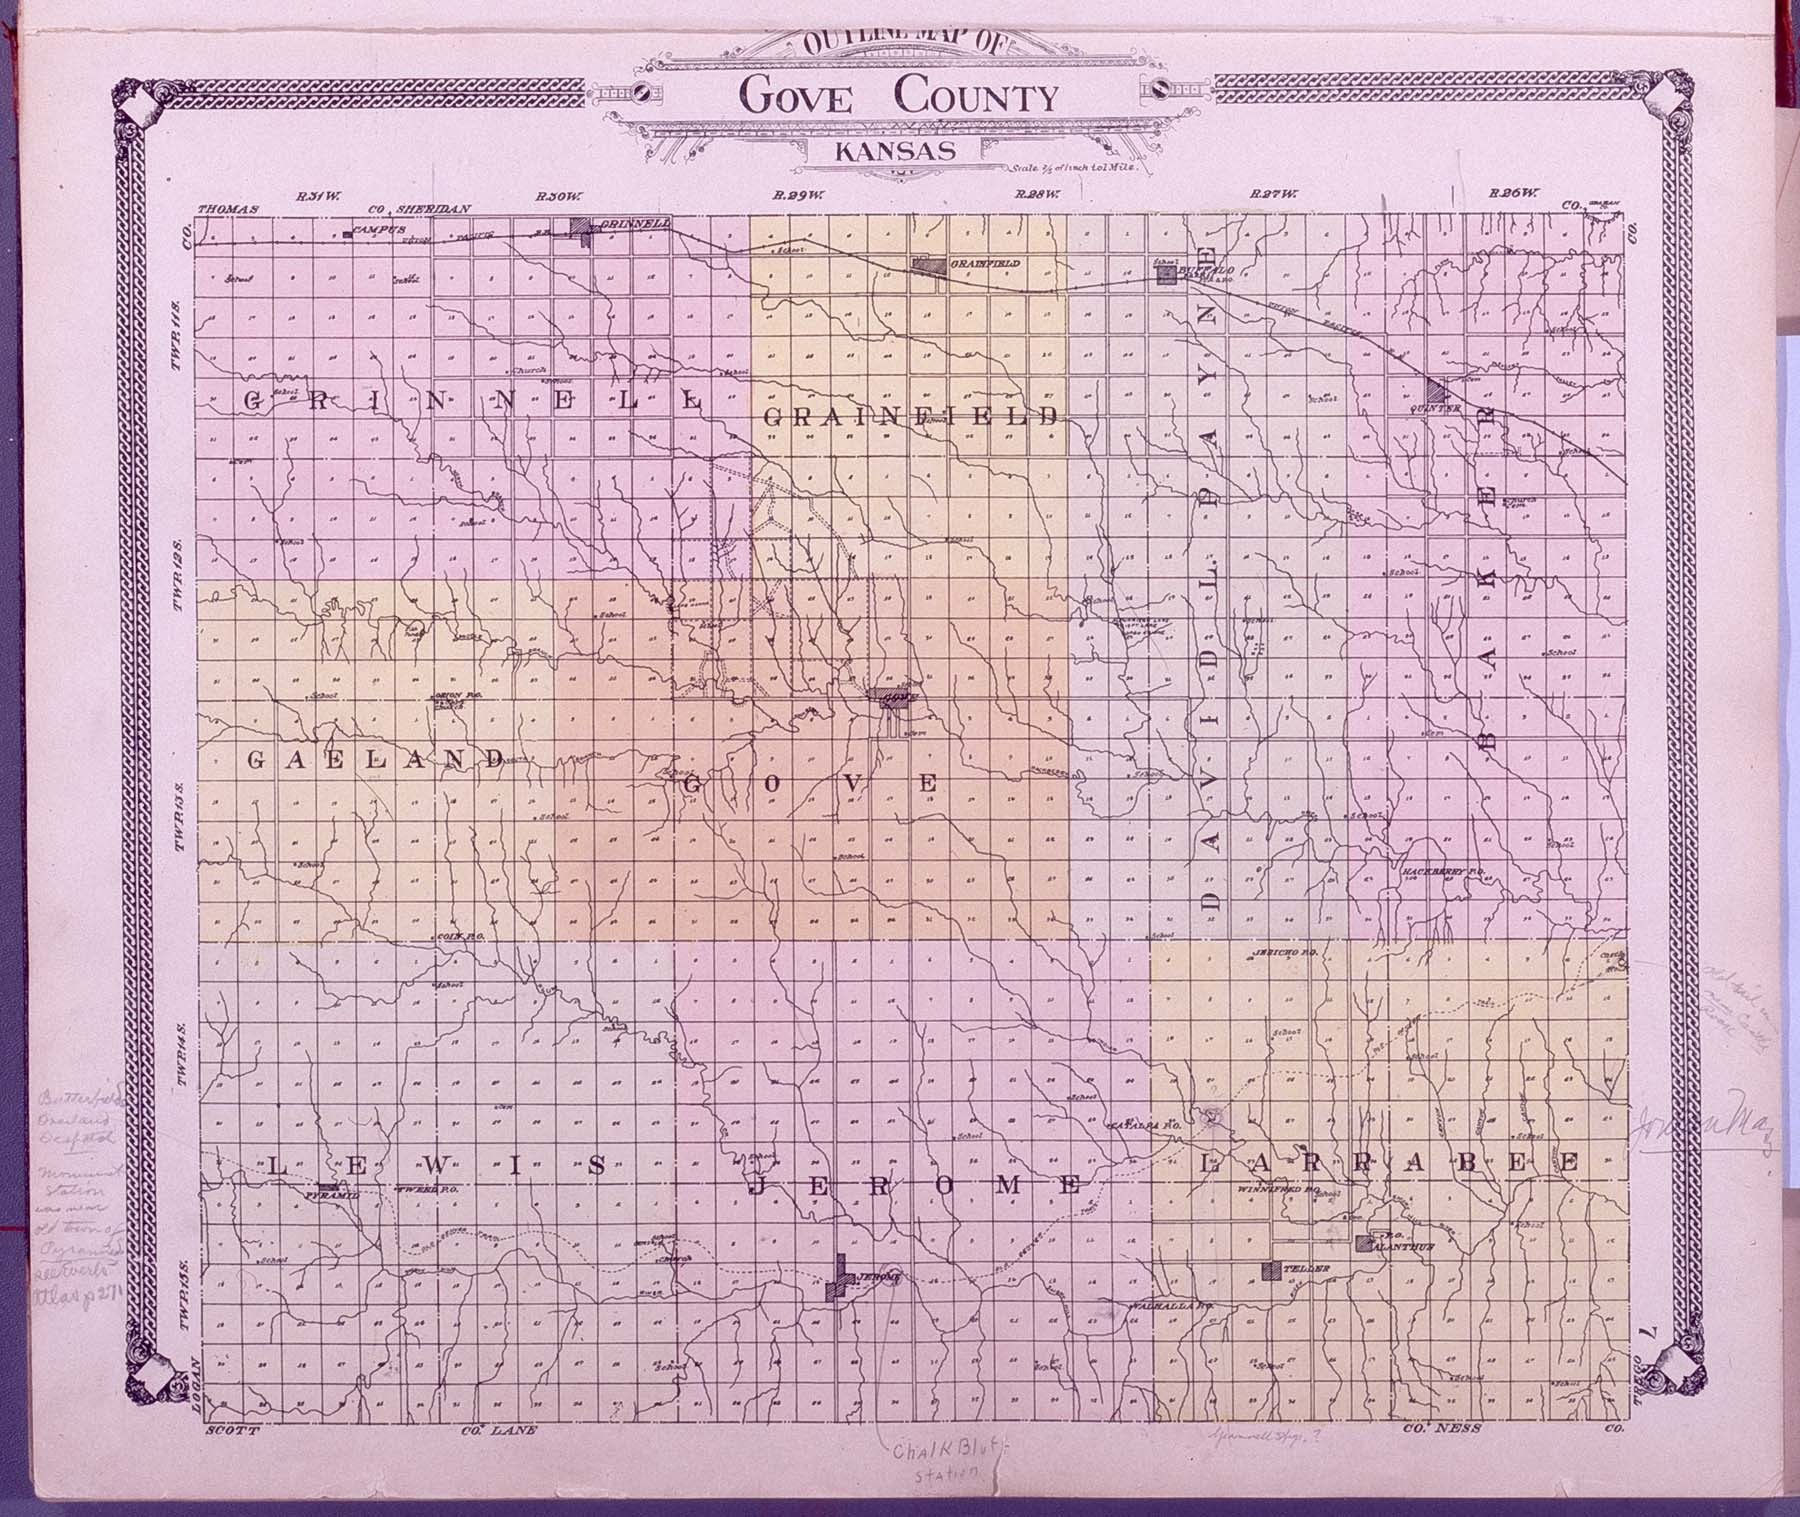 Standard atlas of Gove County, Kansas - 7